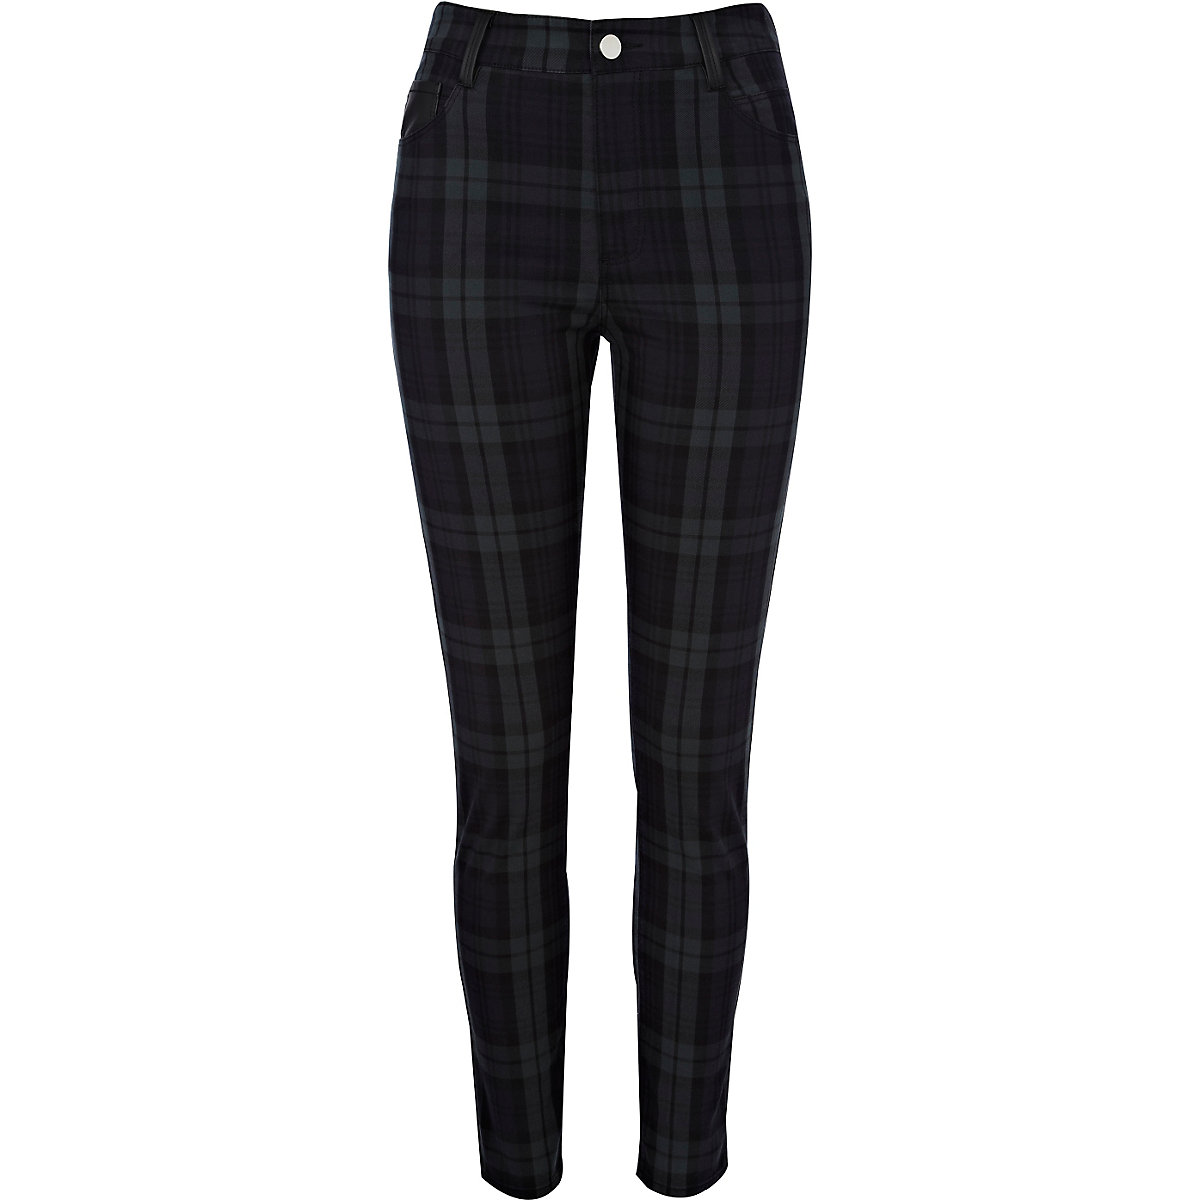 Green check high waisted trousers